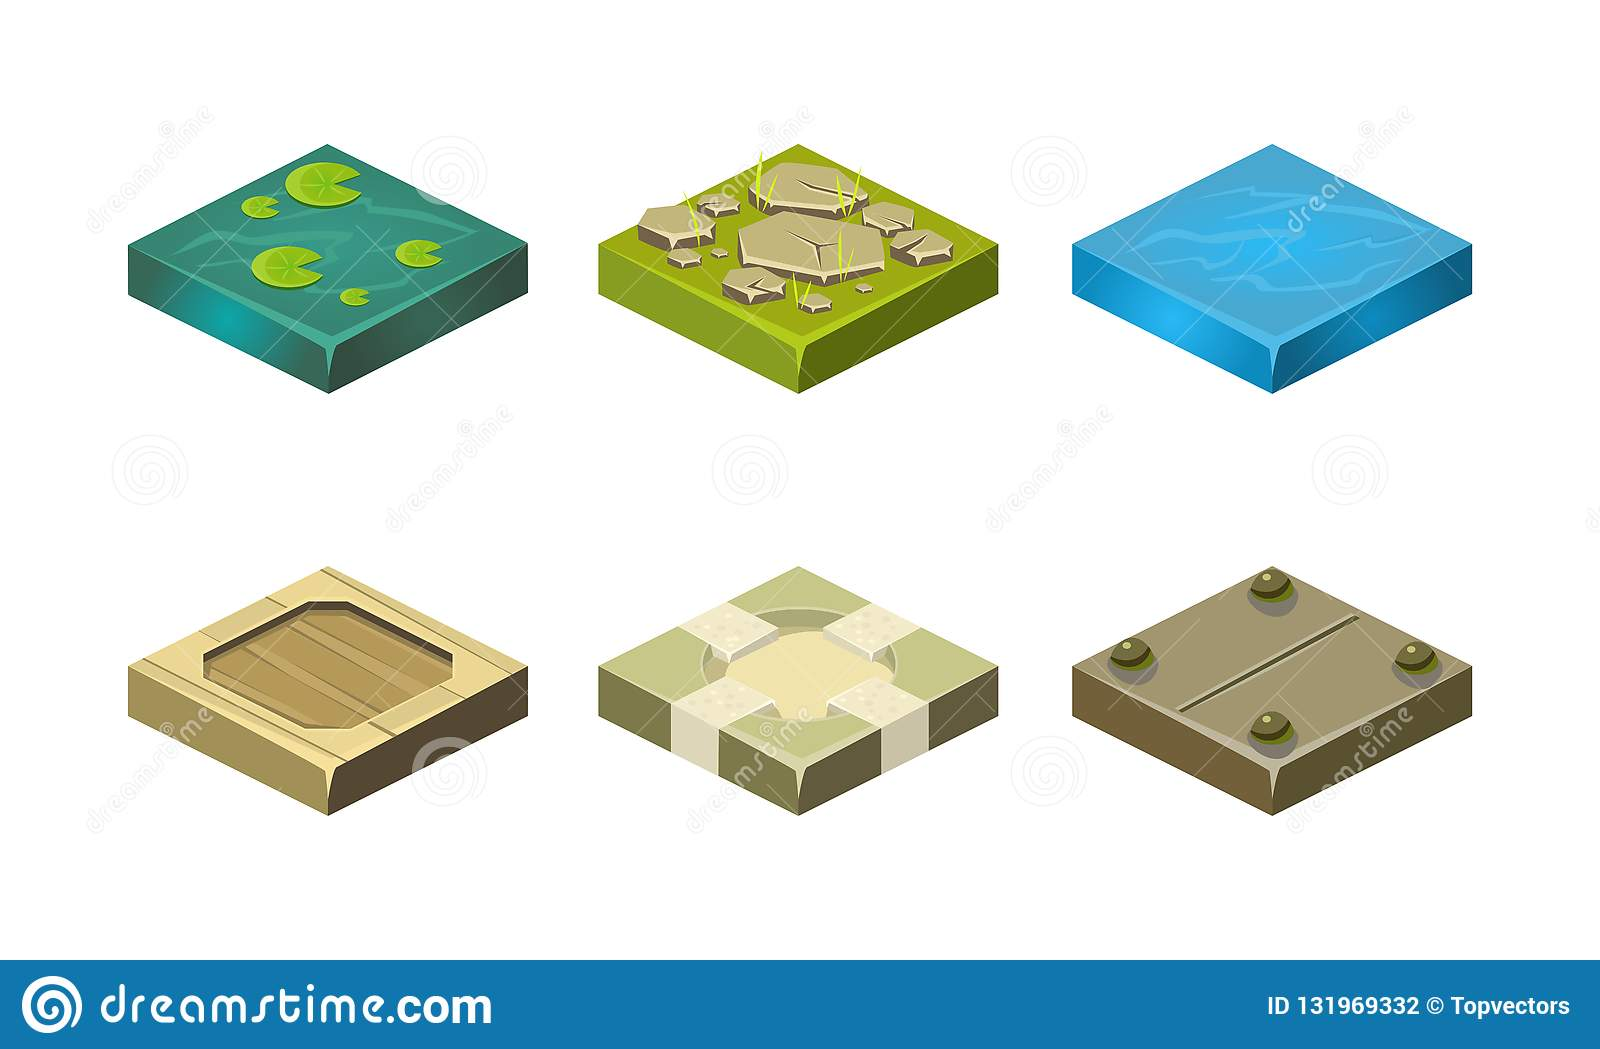 Platforms of different ground textures set, user interface assets for mobile app or video game vector Illustration on a